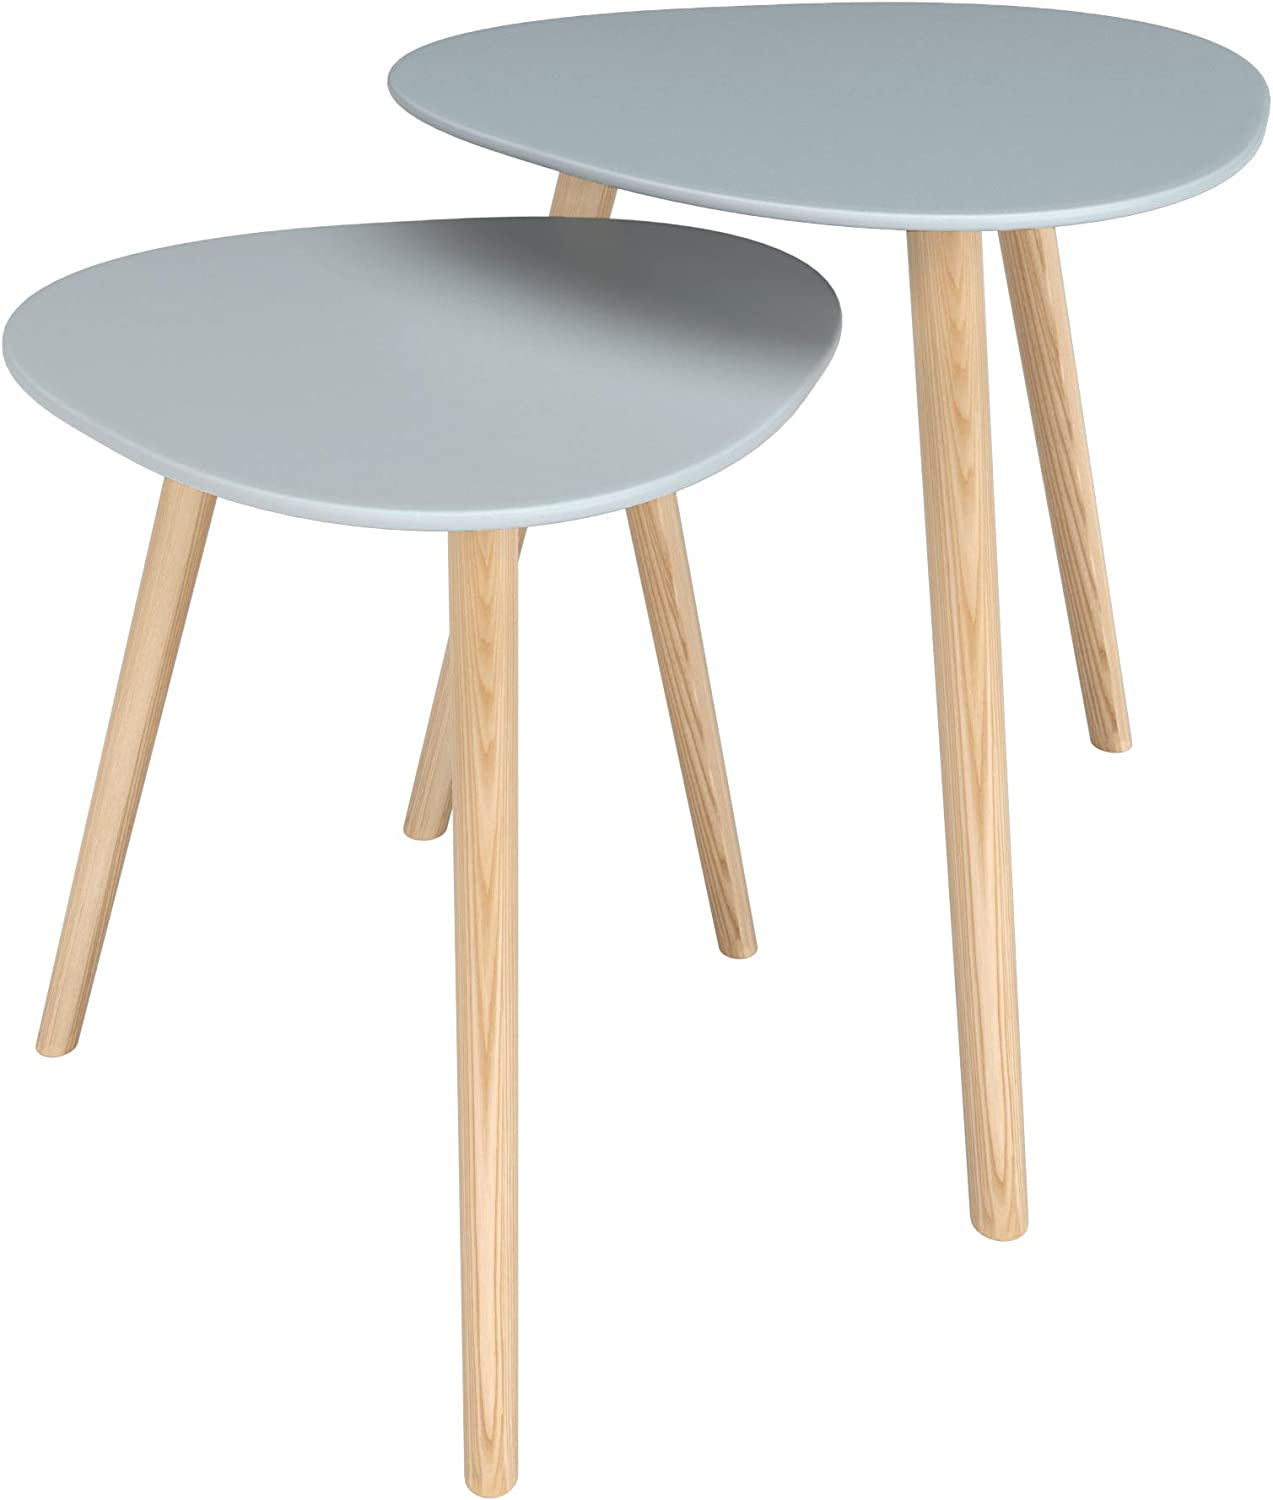 Contemporary Side Tables Selling service rankings for Living Room Set Modern 2 - of